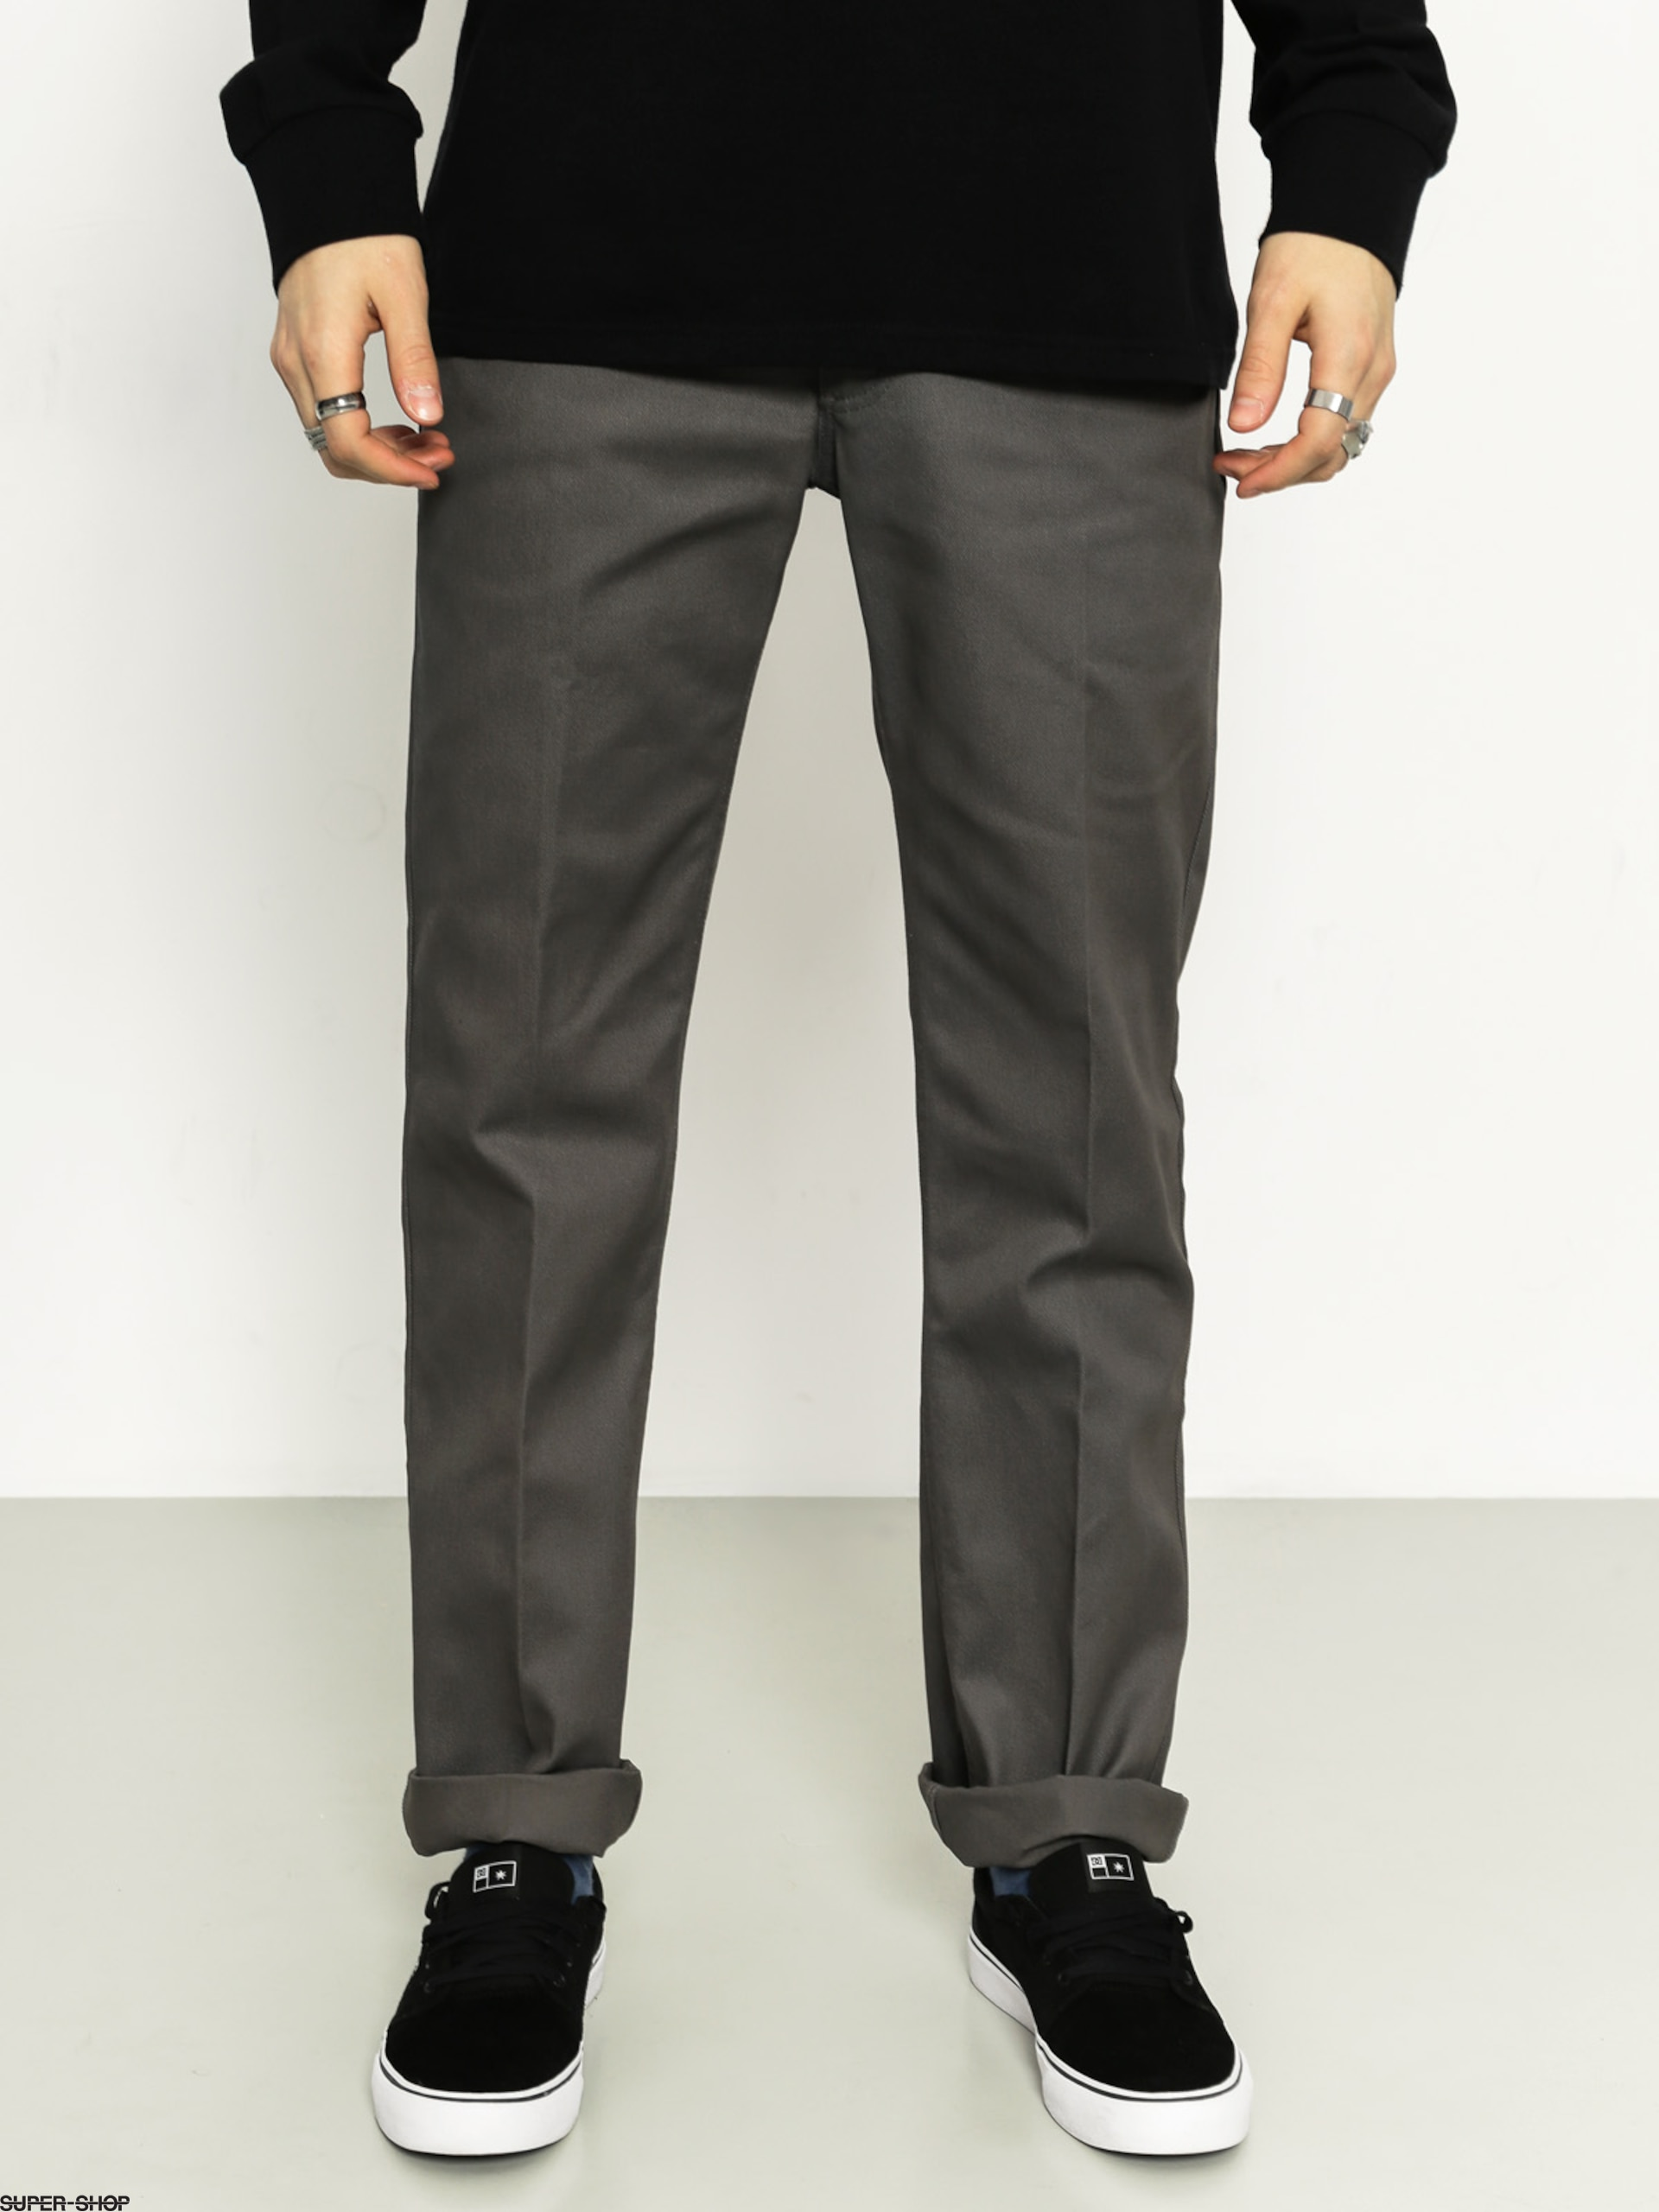 Brixton Hose Fleet Rgd Chino (charcoal)